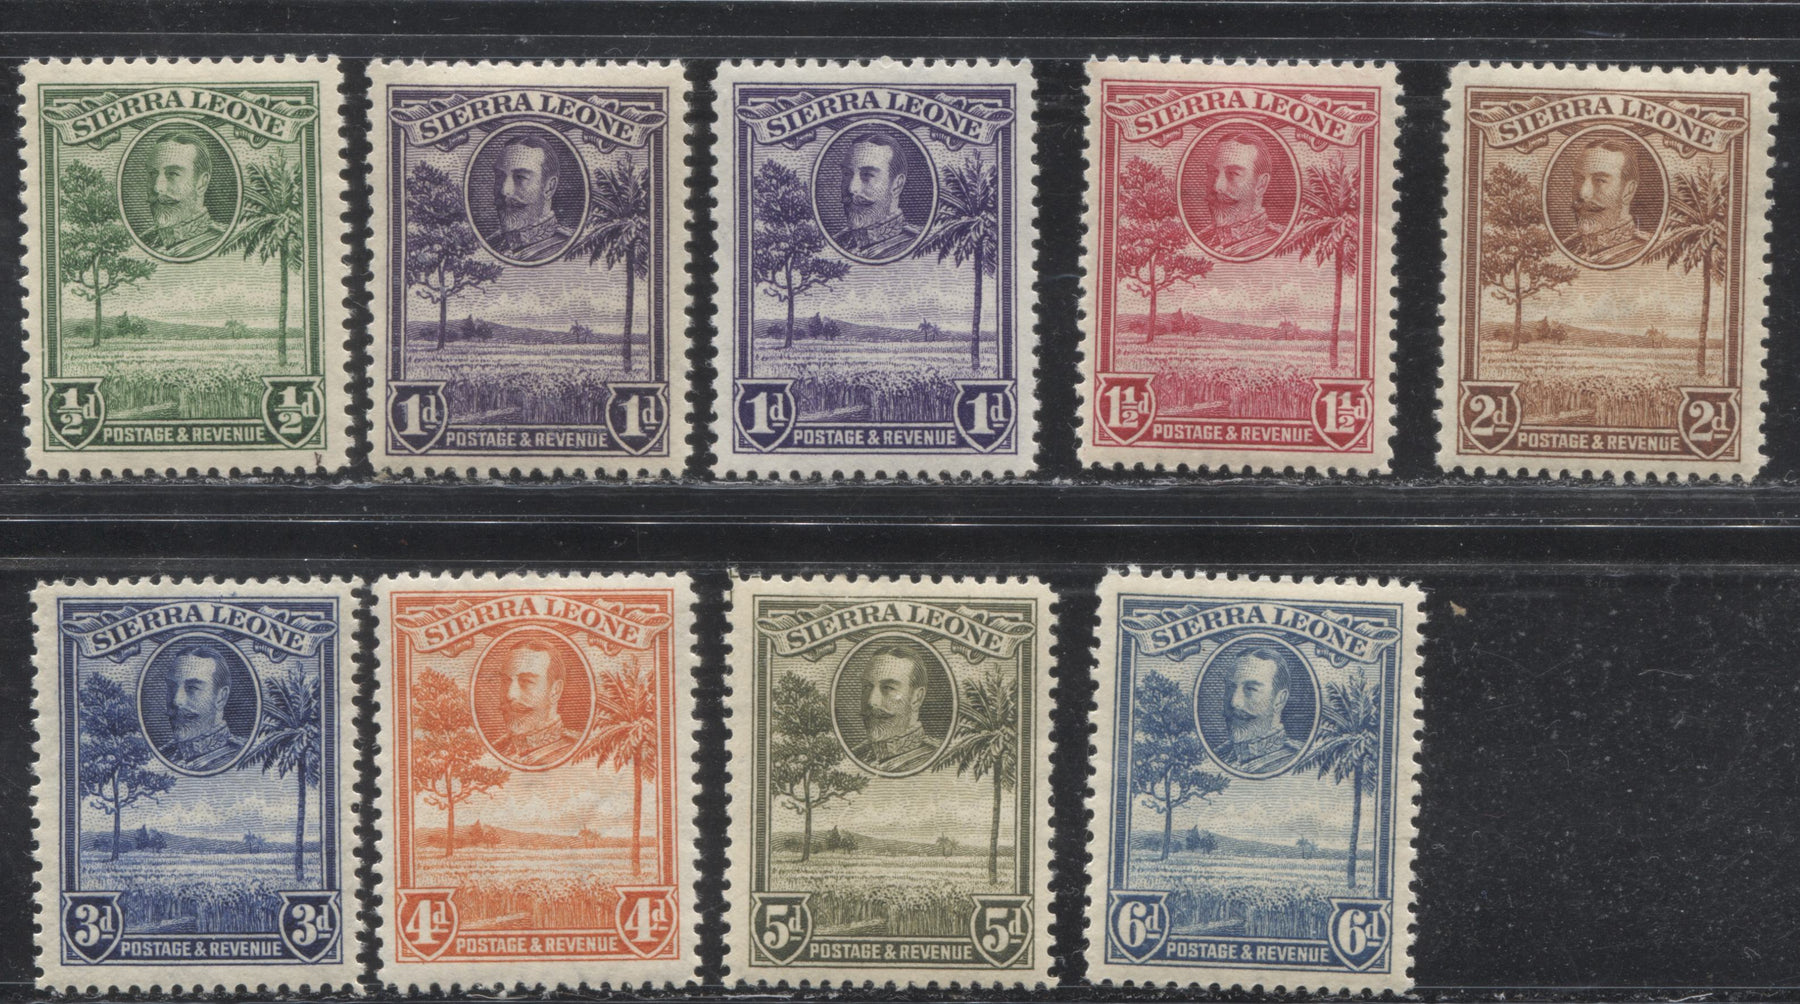 Sierra Leone #140-147 (SG#155-162) 1/2d Green - 6d Light Blue King George V and Rice Field, 1932 Definitive Issue, Complete F-VF OG Mint Including Extra Shade of the 1d